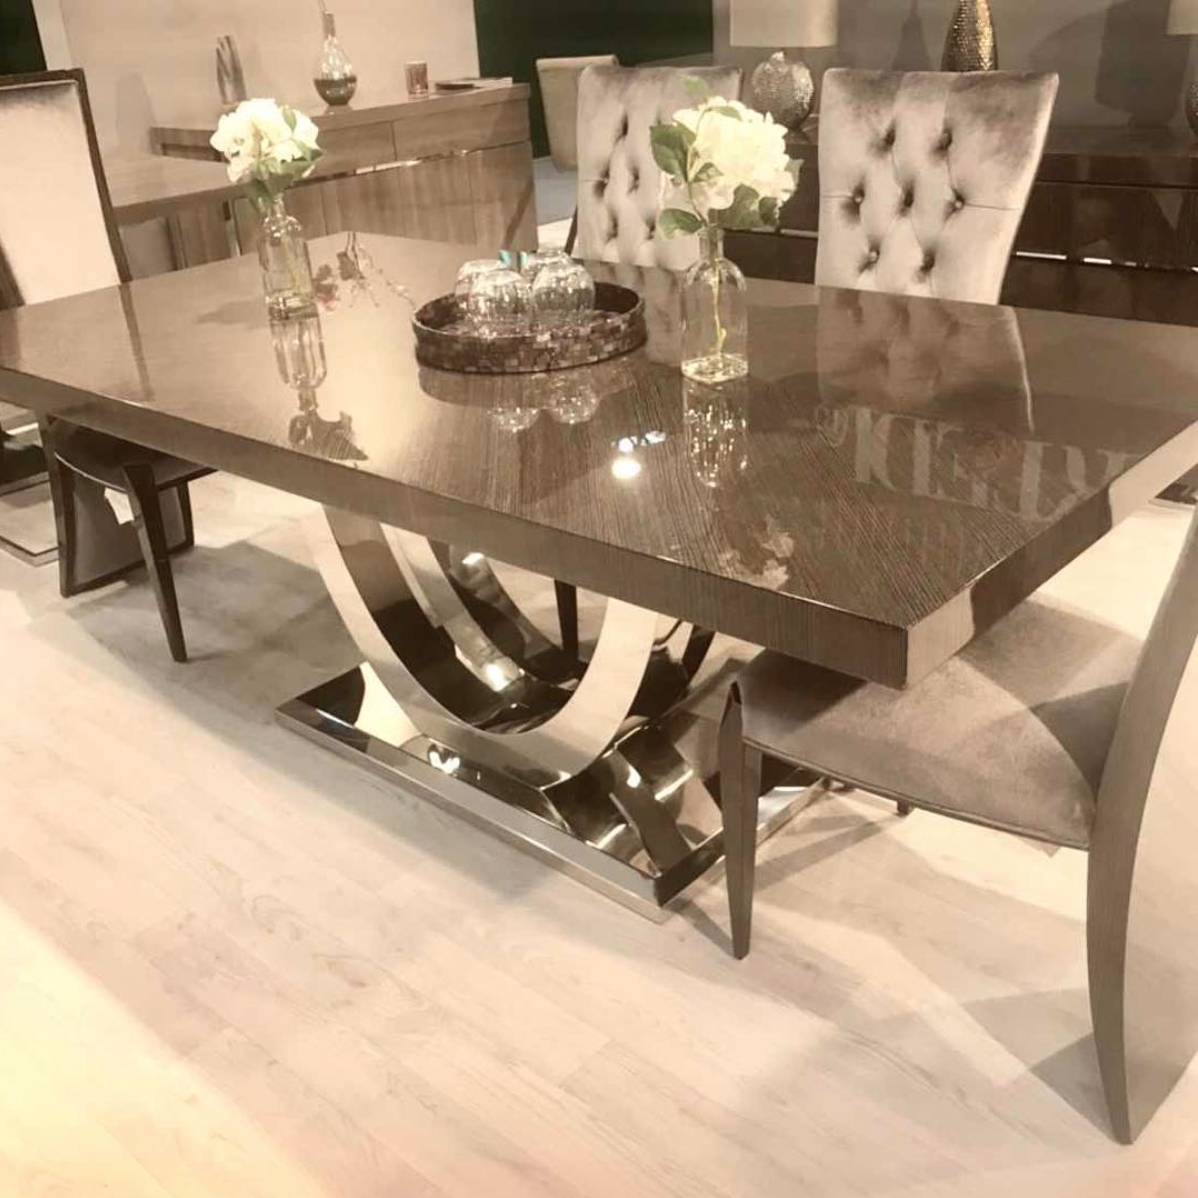 High Gloss Dining Table With Chrome Base In Widely Used High Gloss Dining Room Furniture (Gallery 22 of 25)